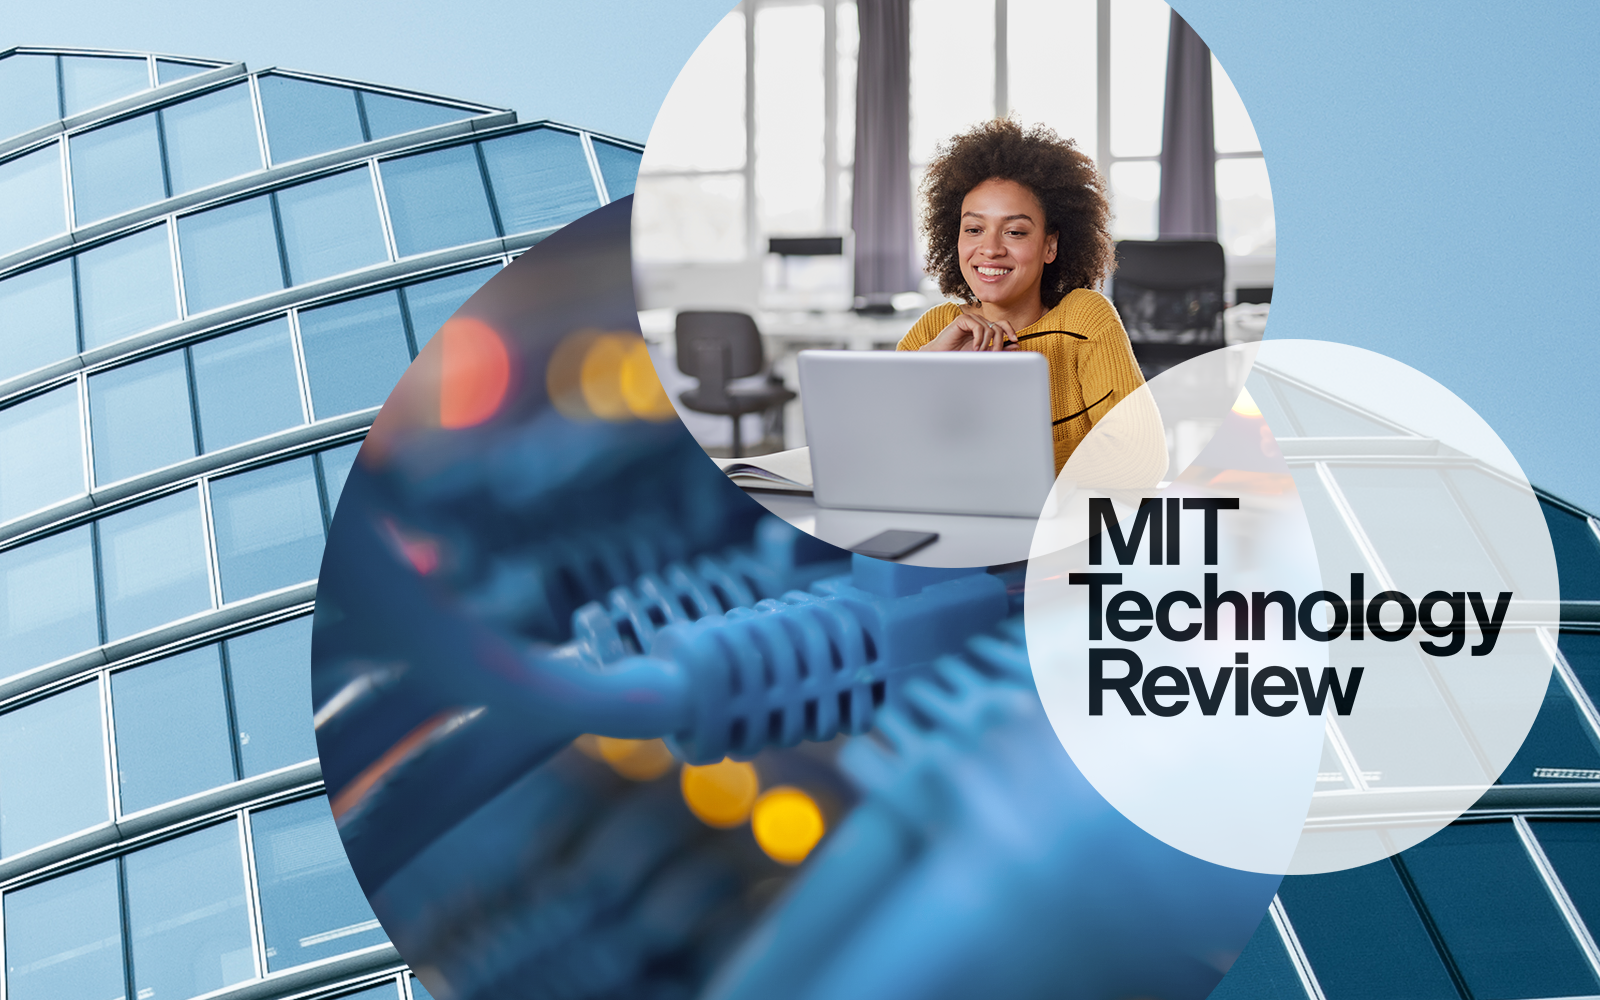 Image of a woman sitting in front of a laptop. Next to it, cables and the MIT Technology Review logo